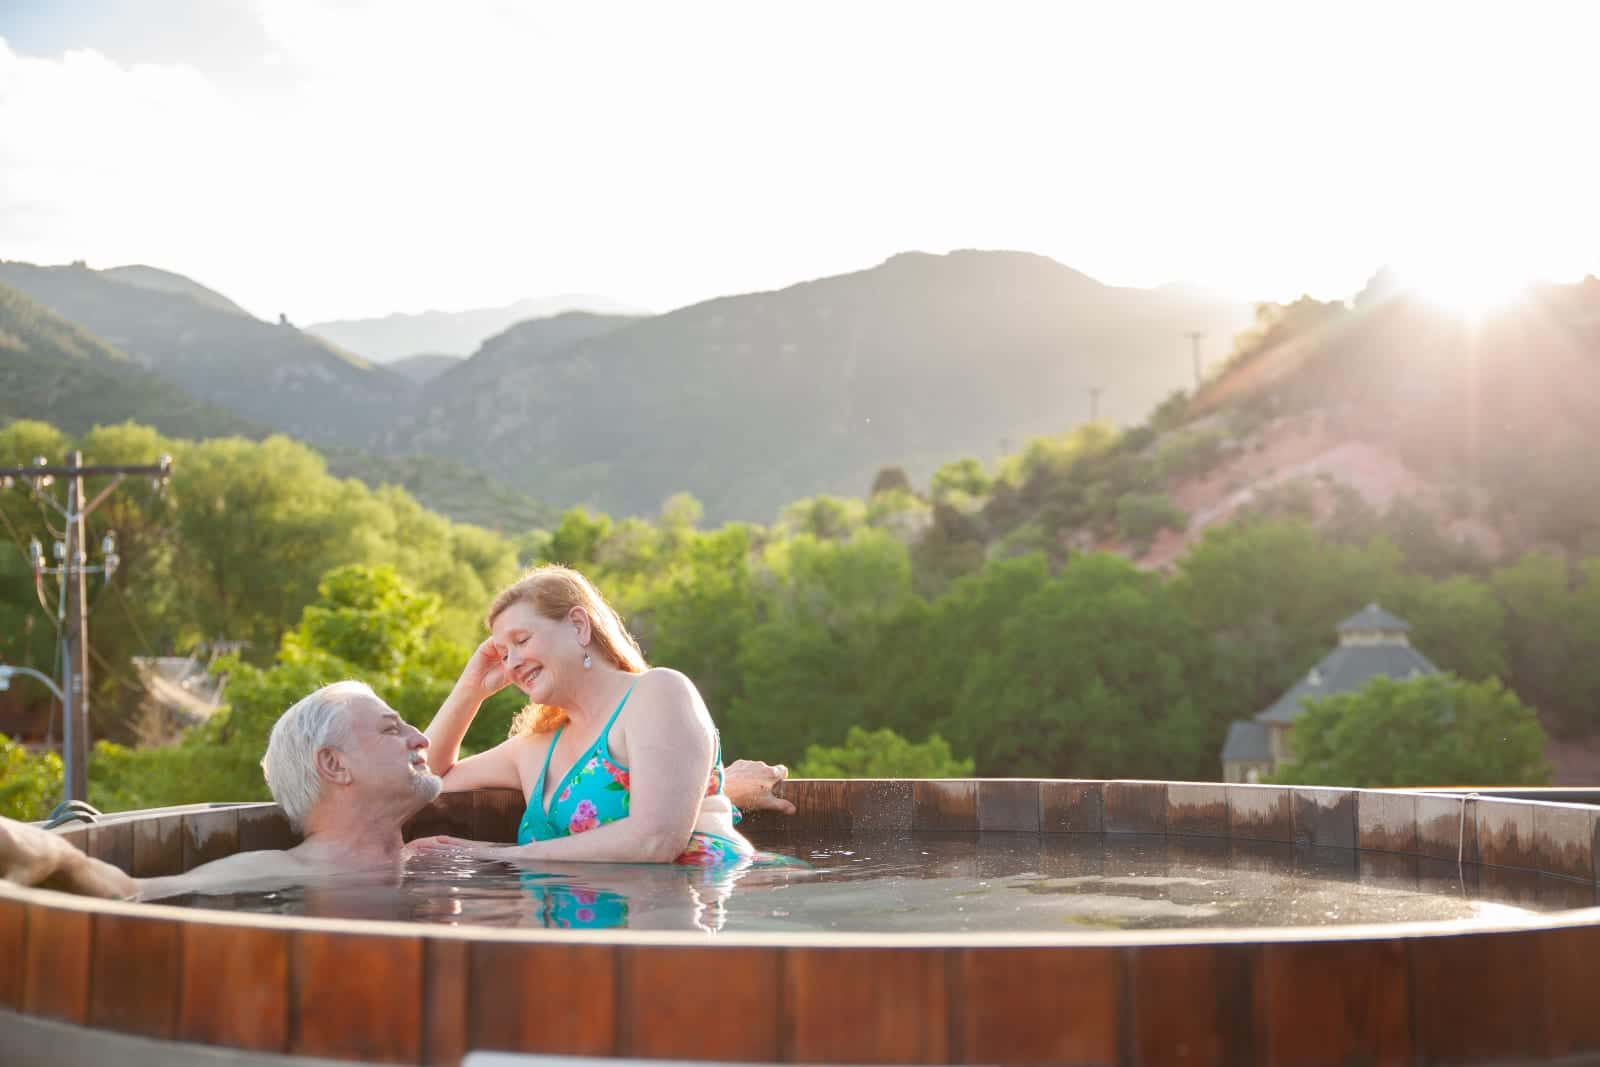 SunWater Spa Hot Springs Pool Manitou Springs Colorado Couple Soaking